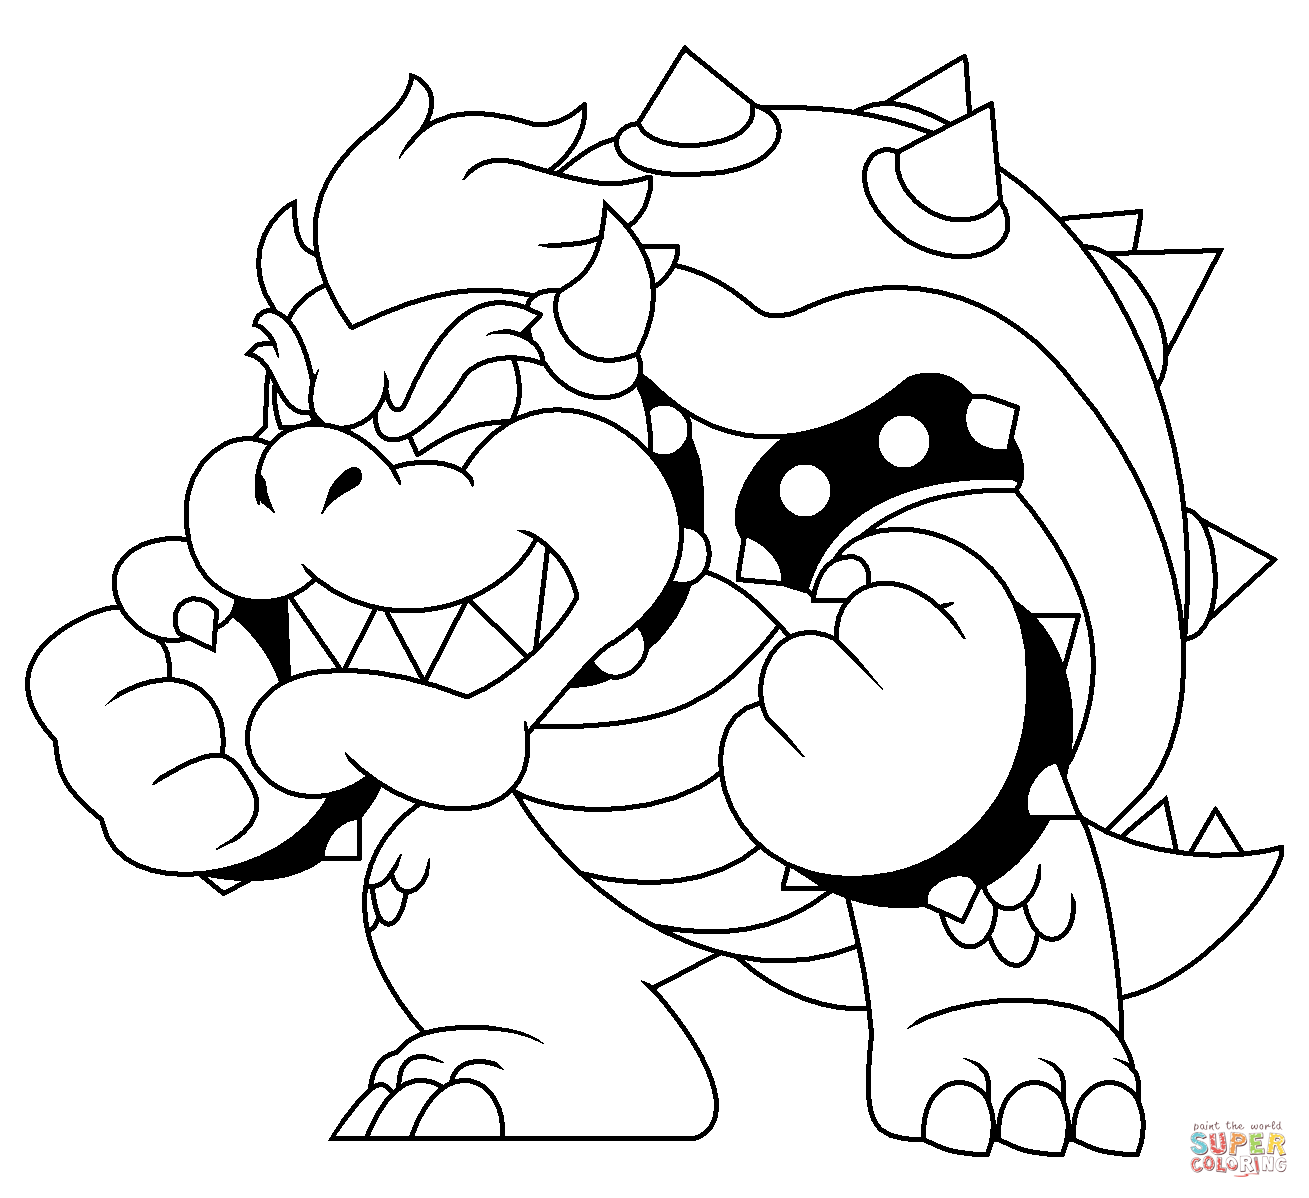 picture of bowser giga bowser ausmalbild clip art library picture of bowser